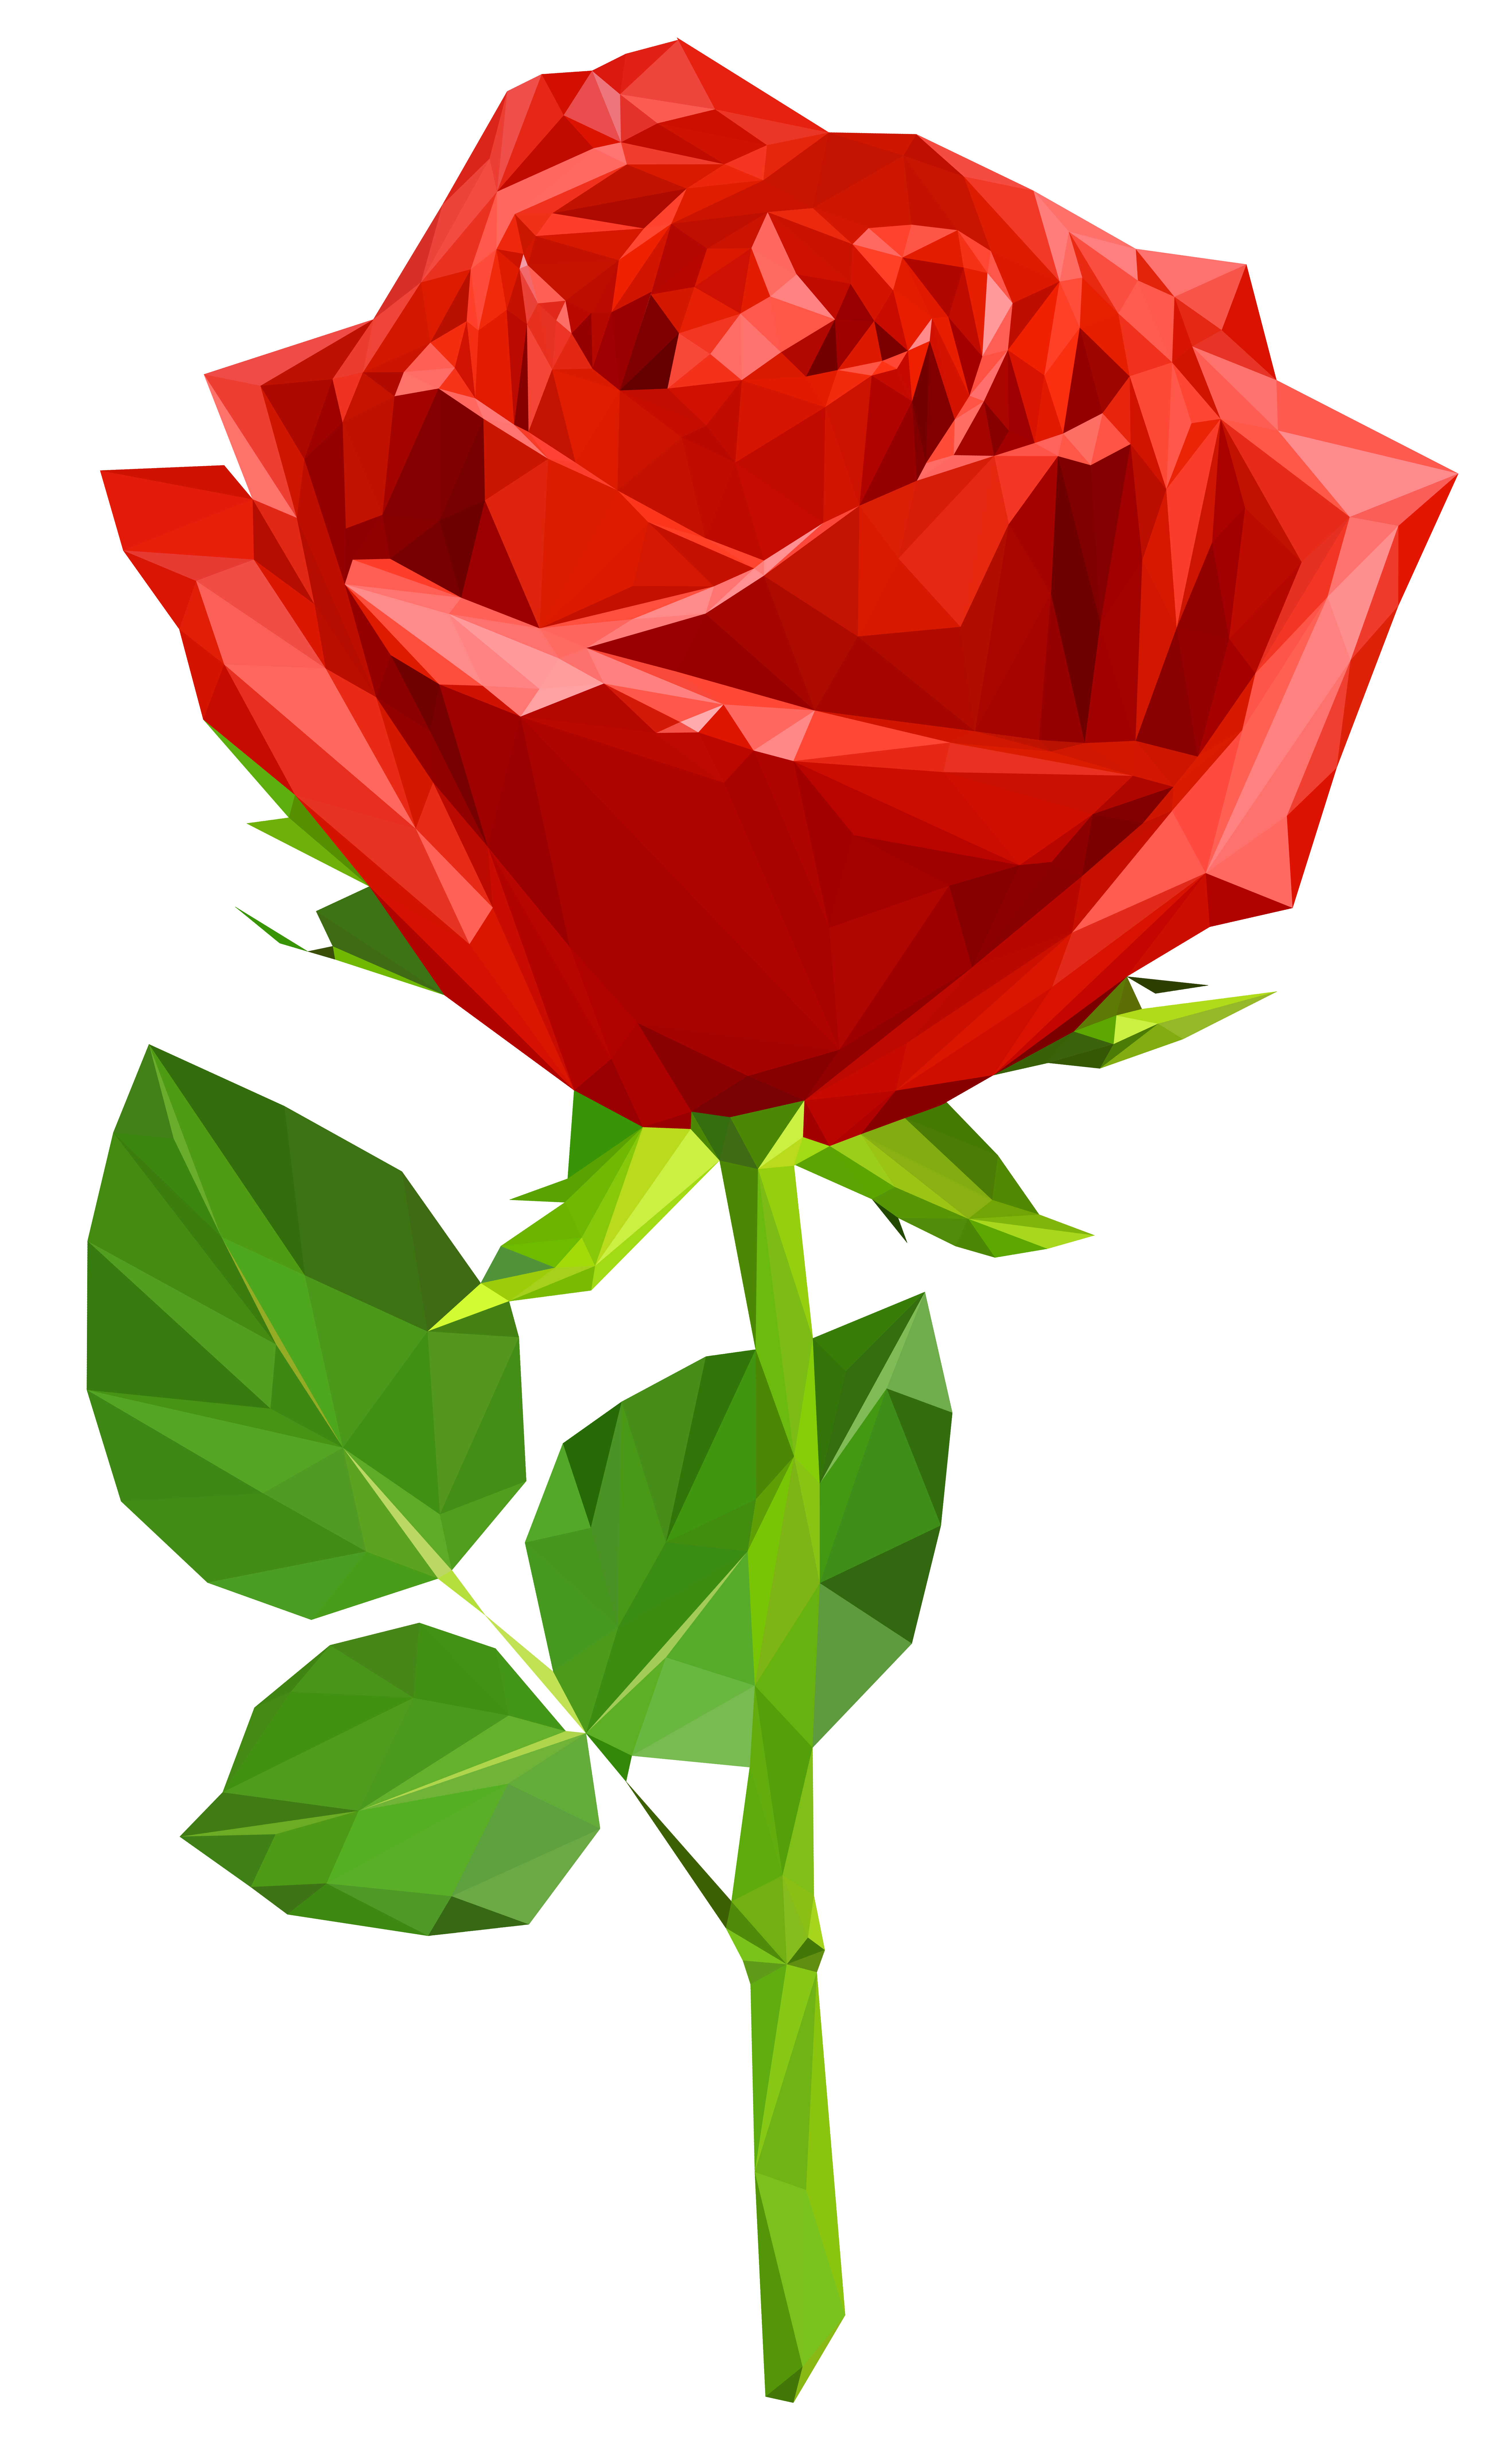 Crystal Red Rose Transparent PNG Clip Art Image Wie man